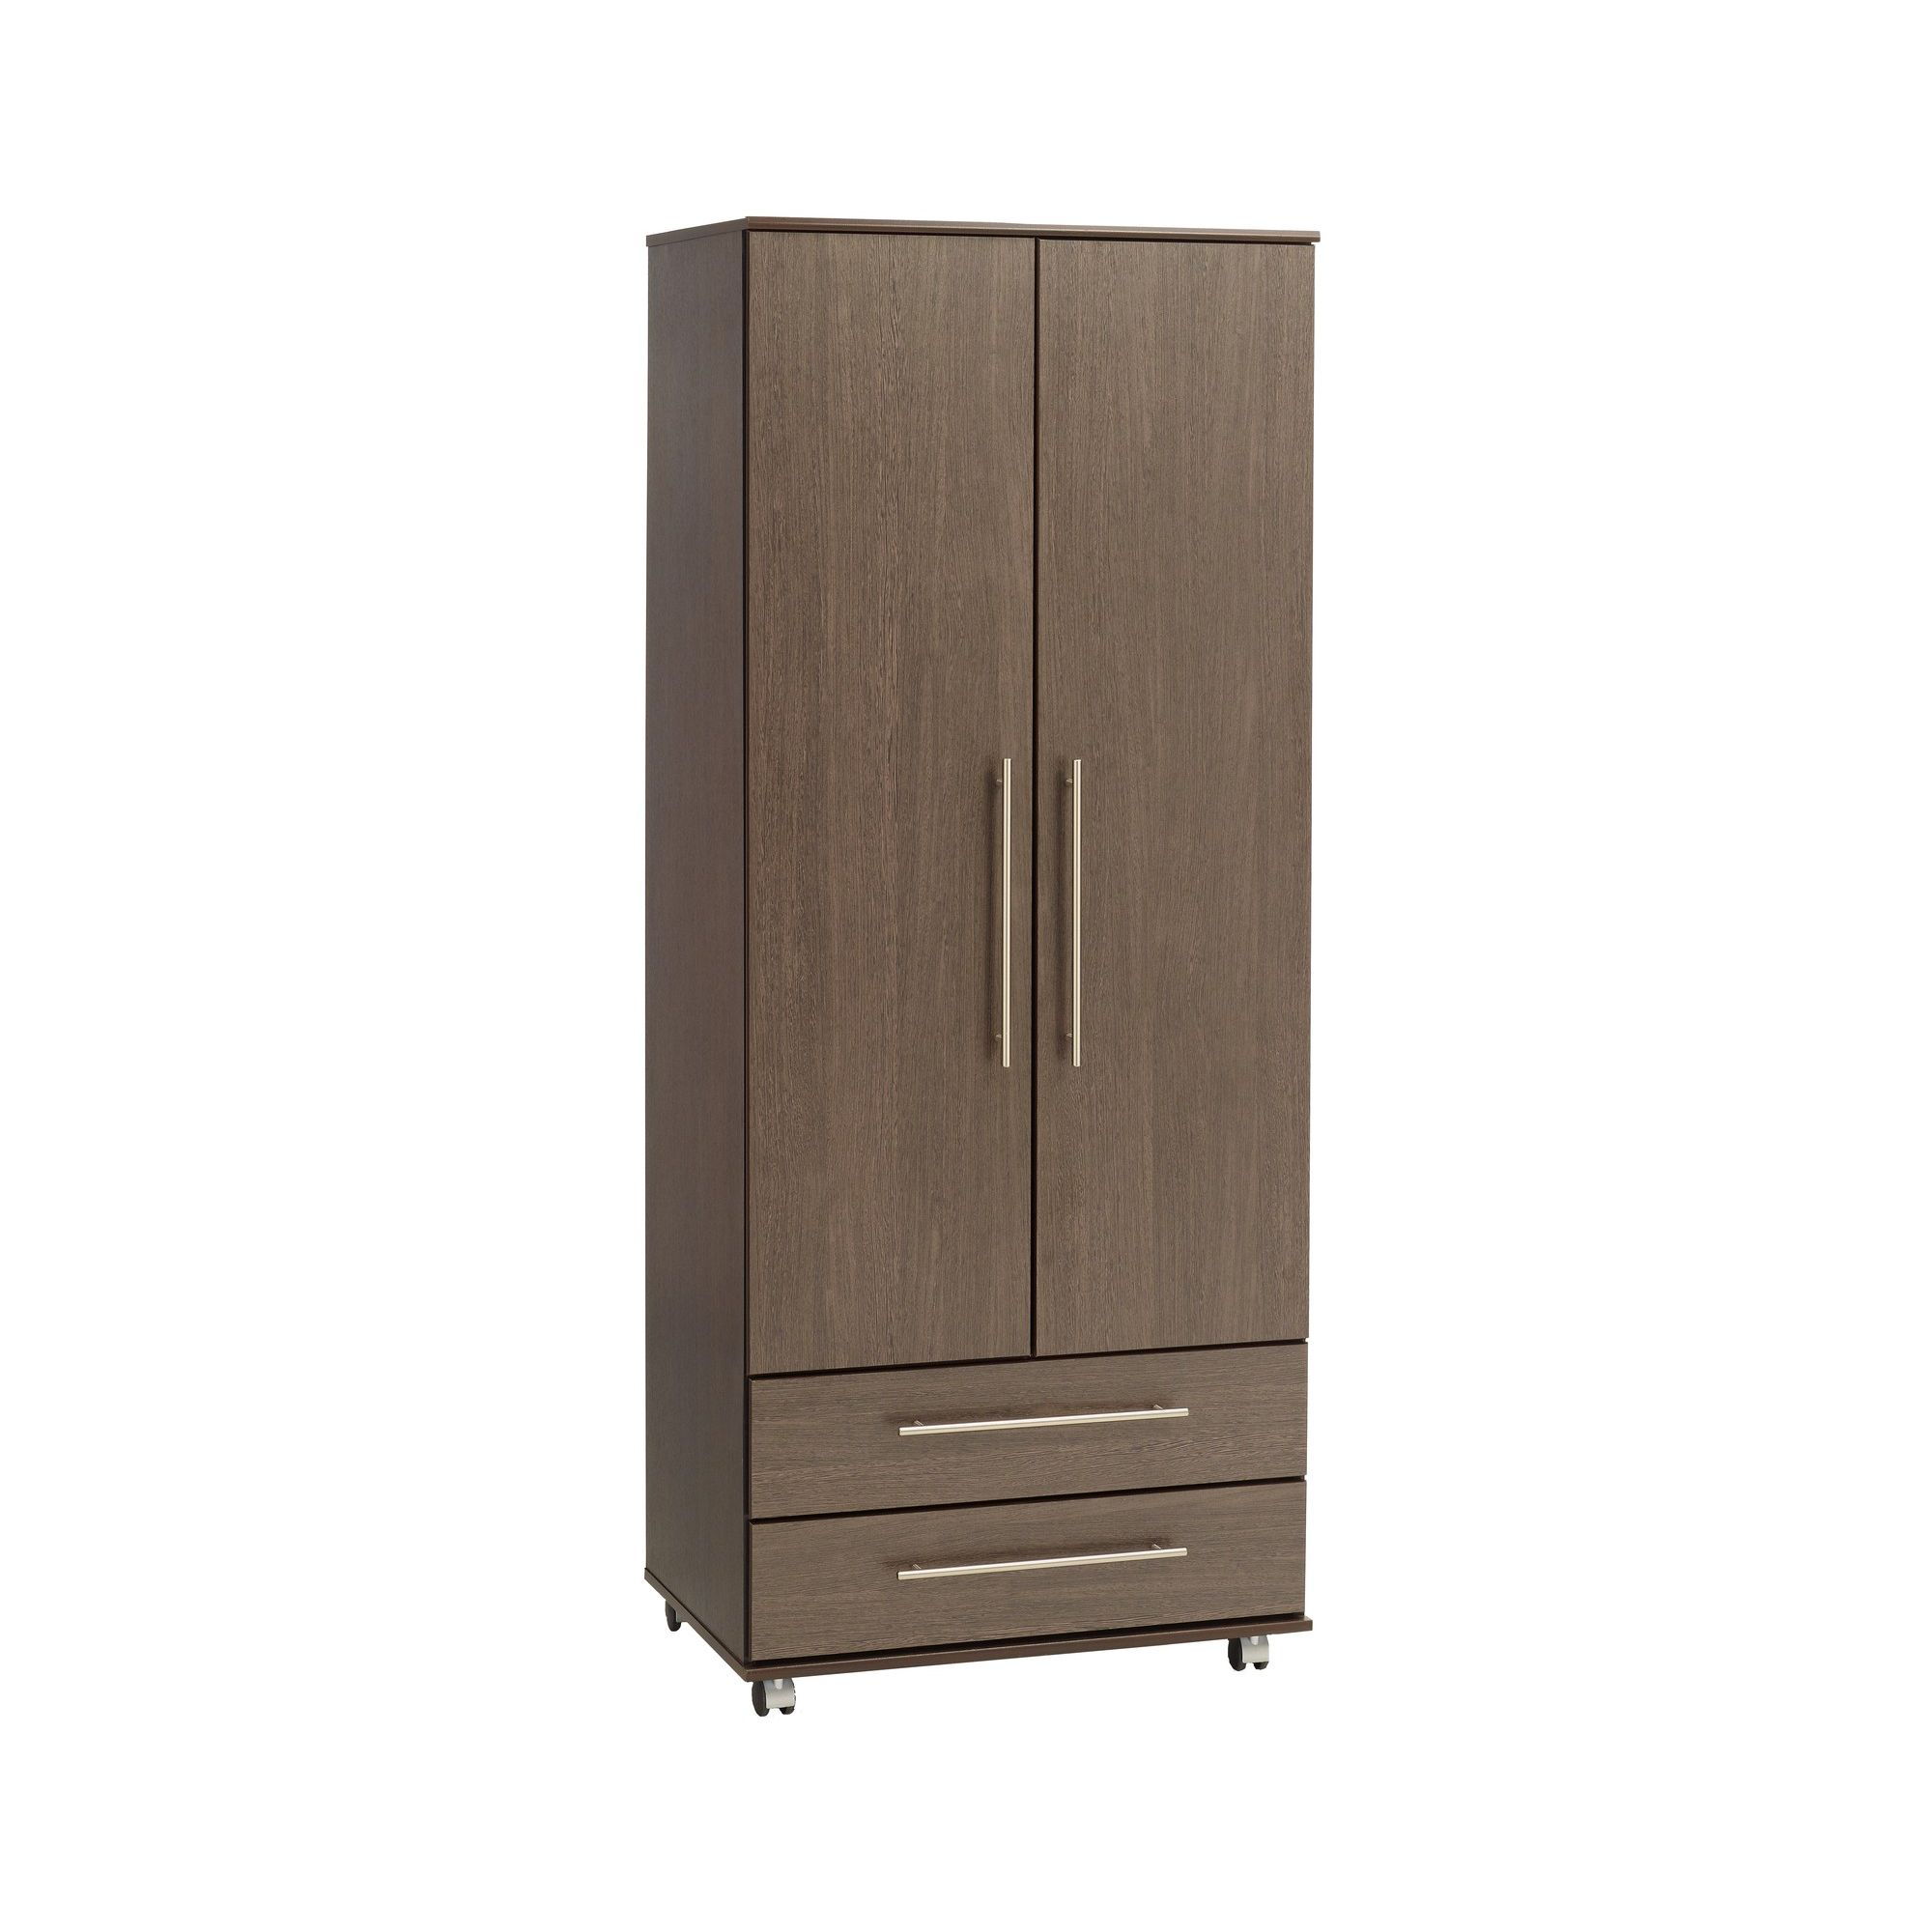 Ideal Furniture New York Combi Wardrobe - Gloss Black at Tesco Direct